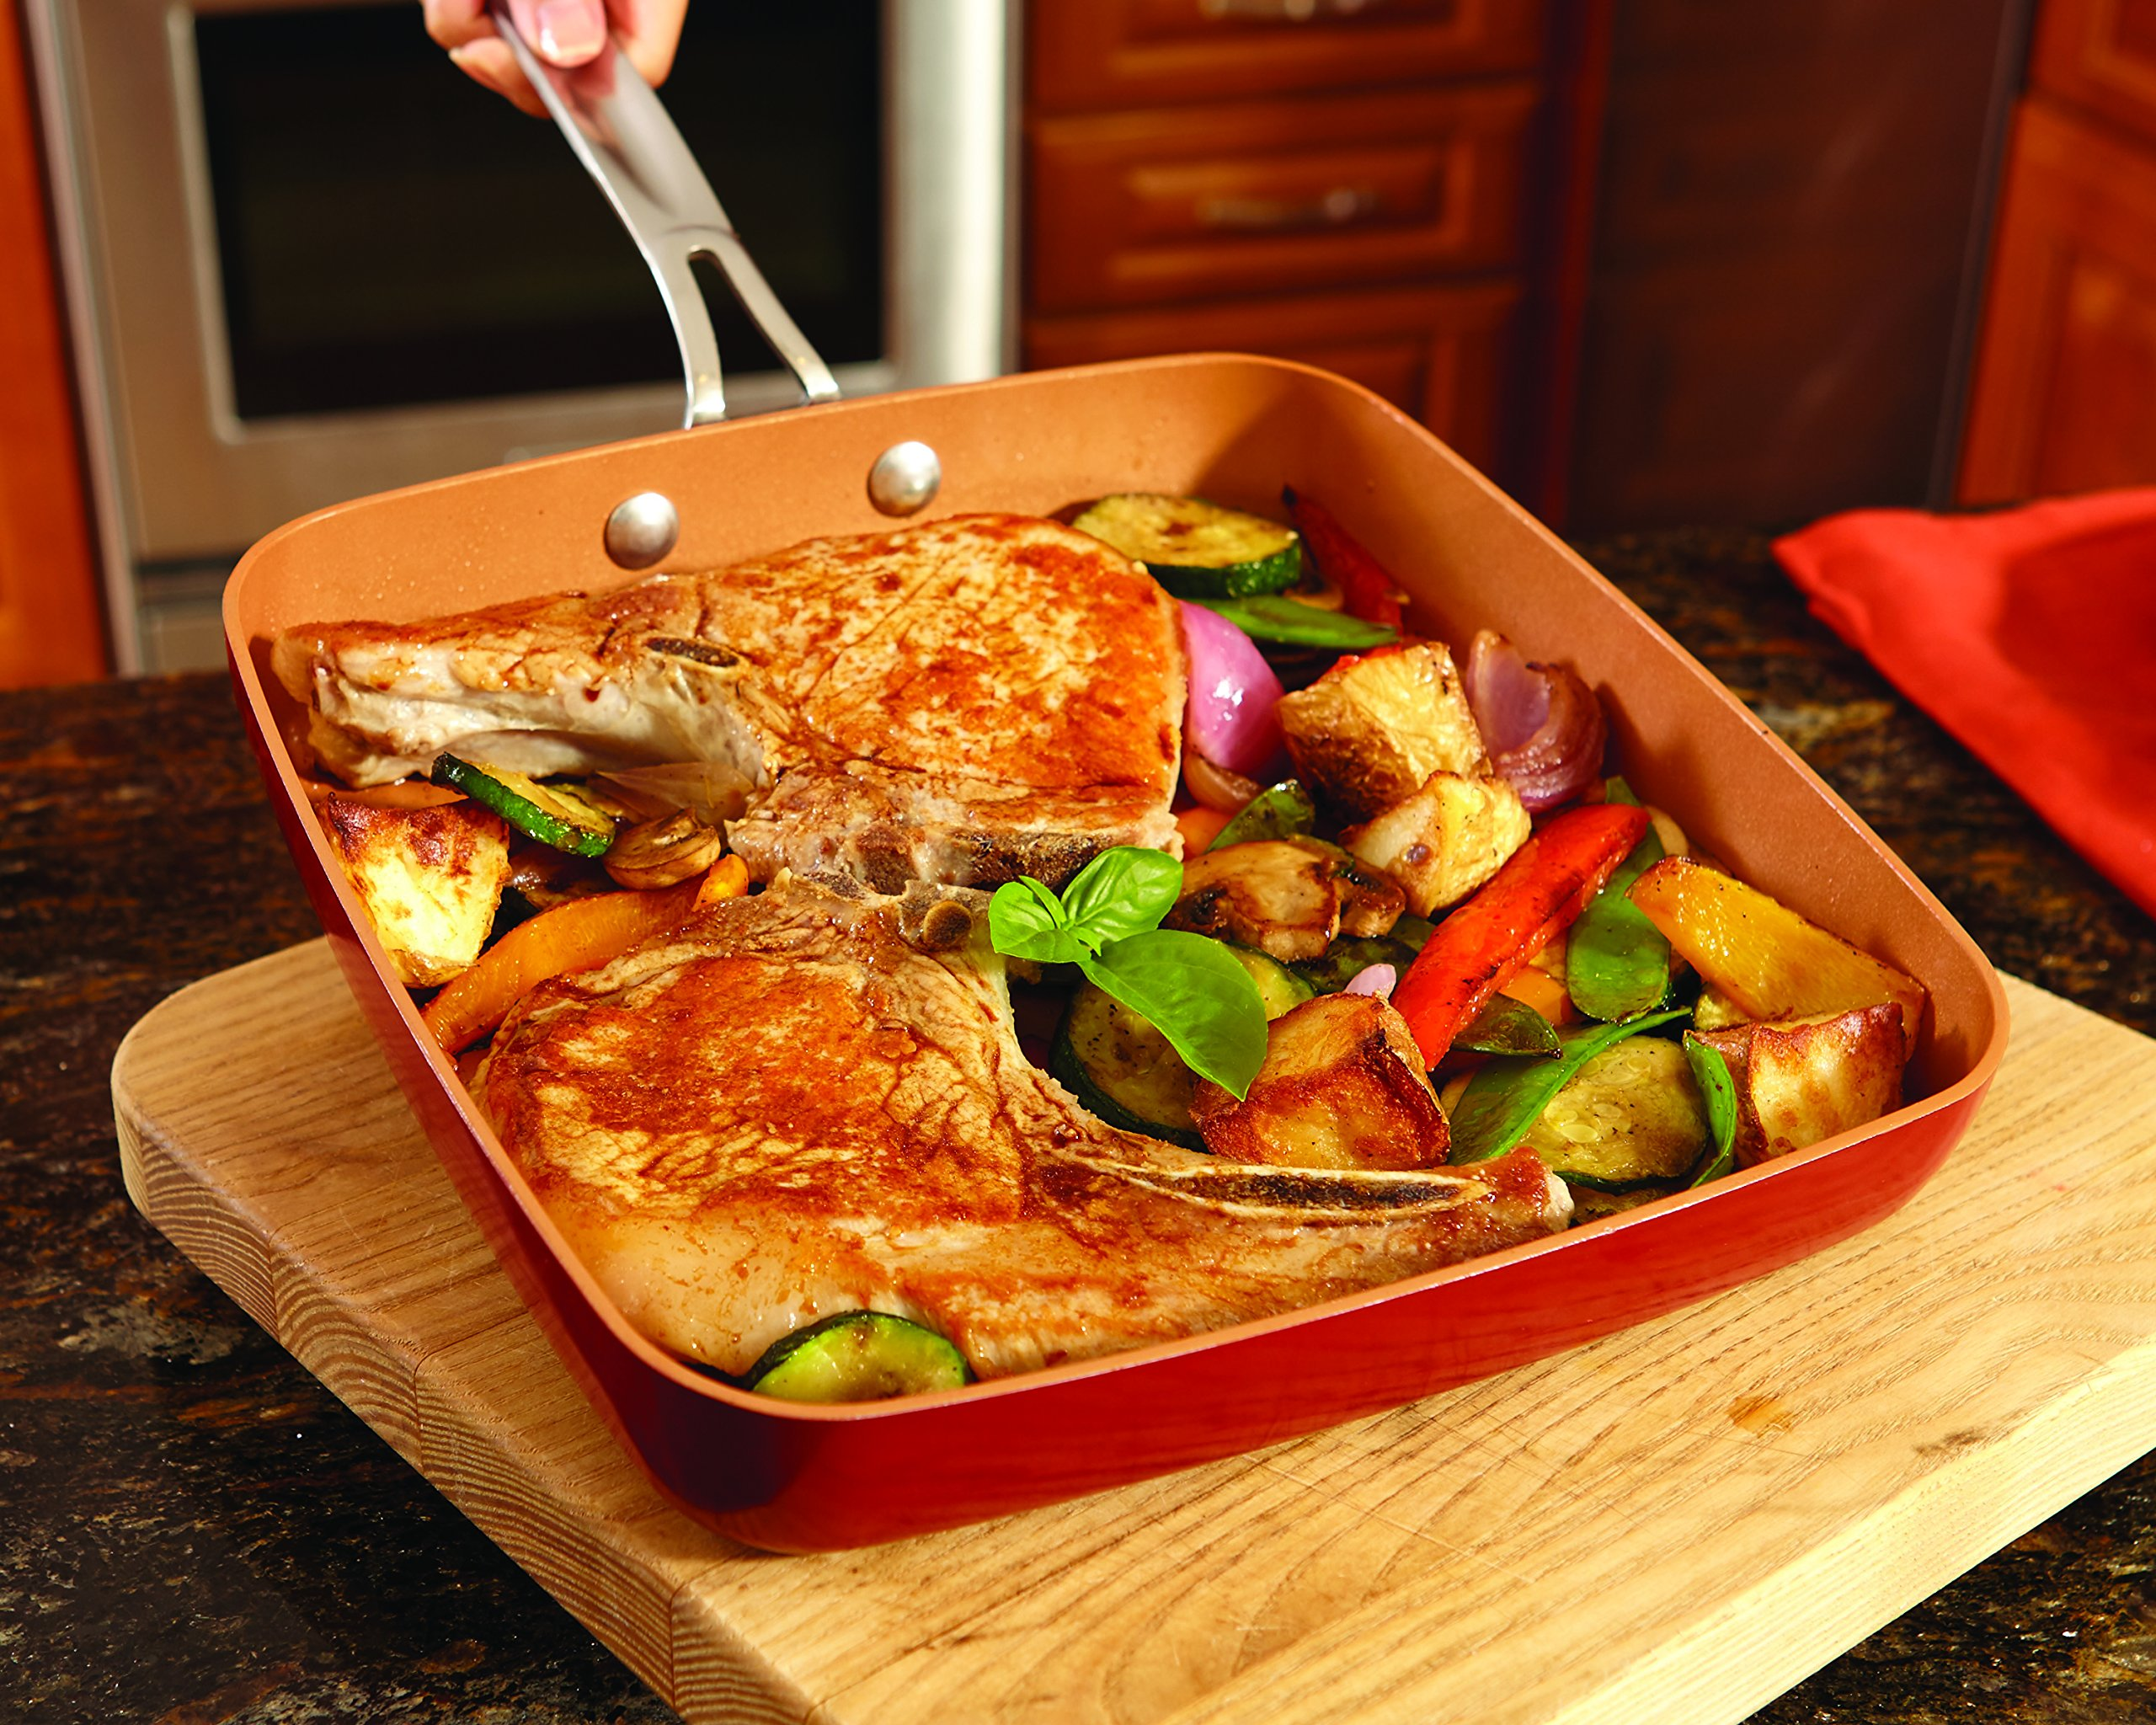 Red Copper Pan Reviews - The Ultimate Buyer\u0027s Guide